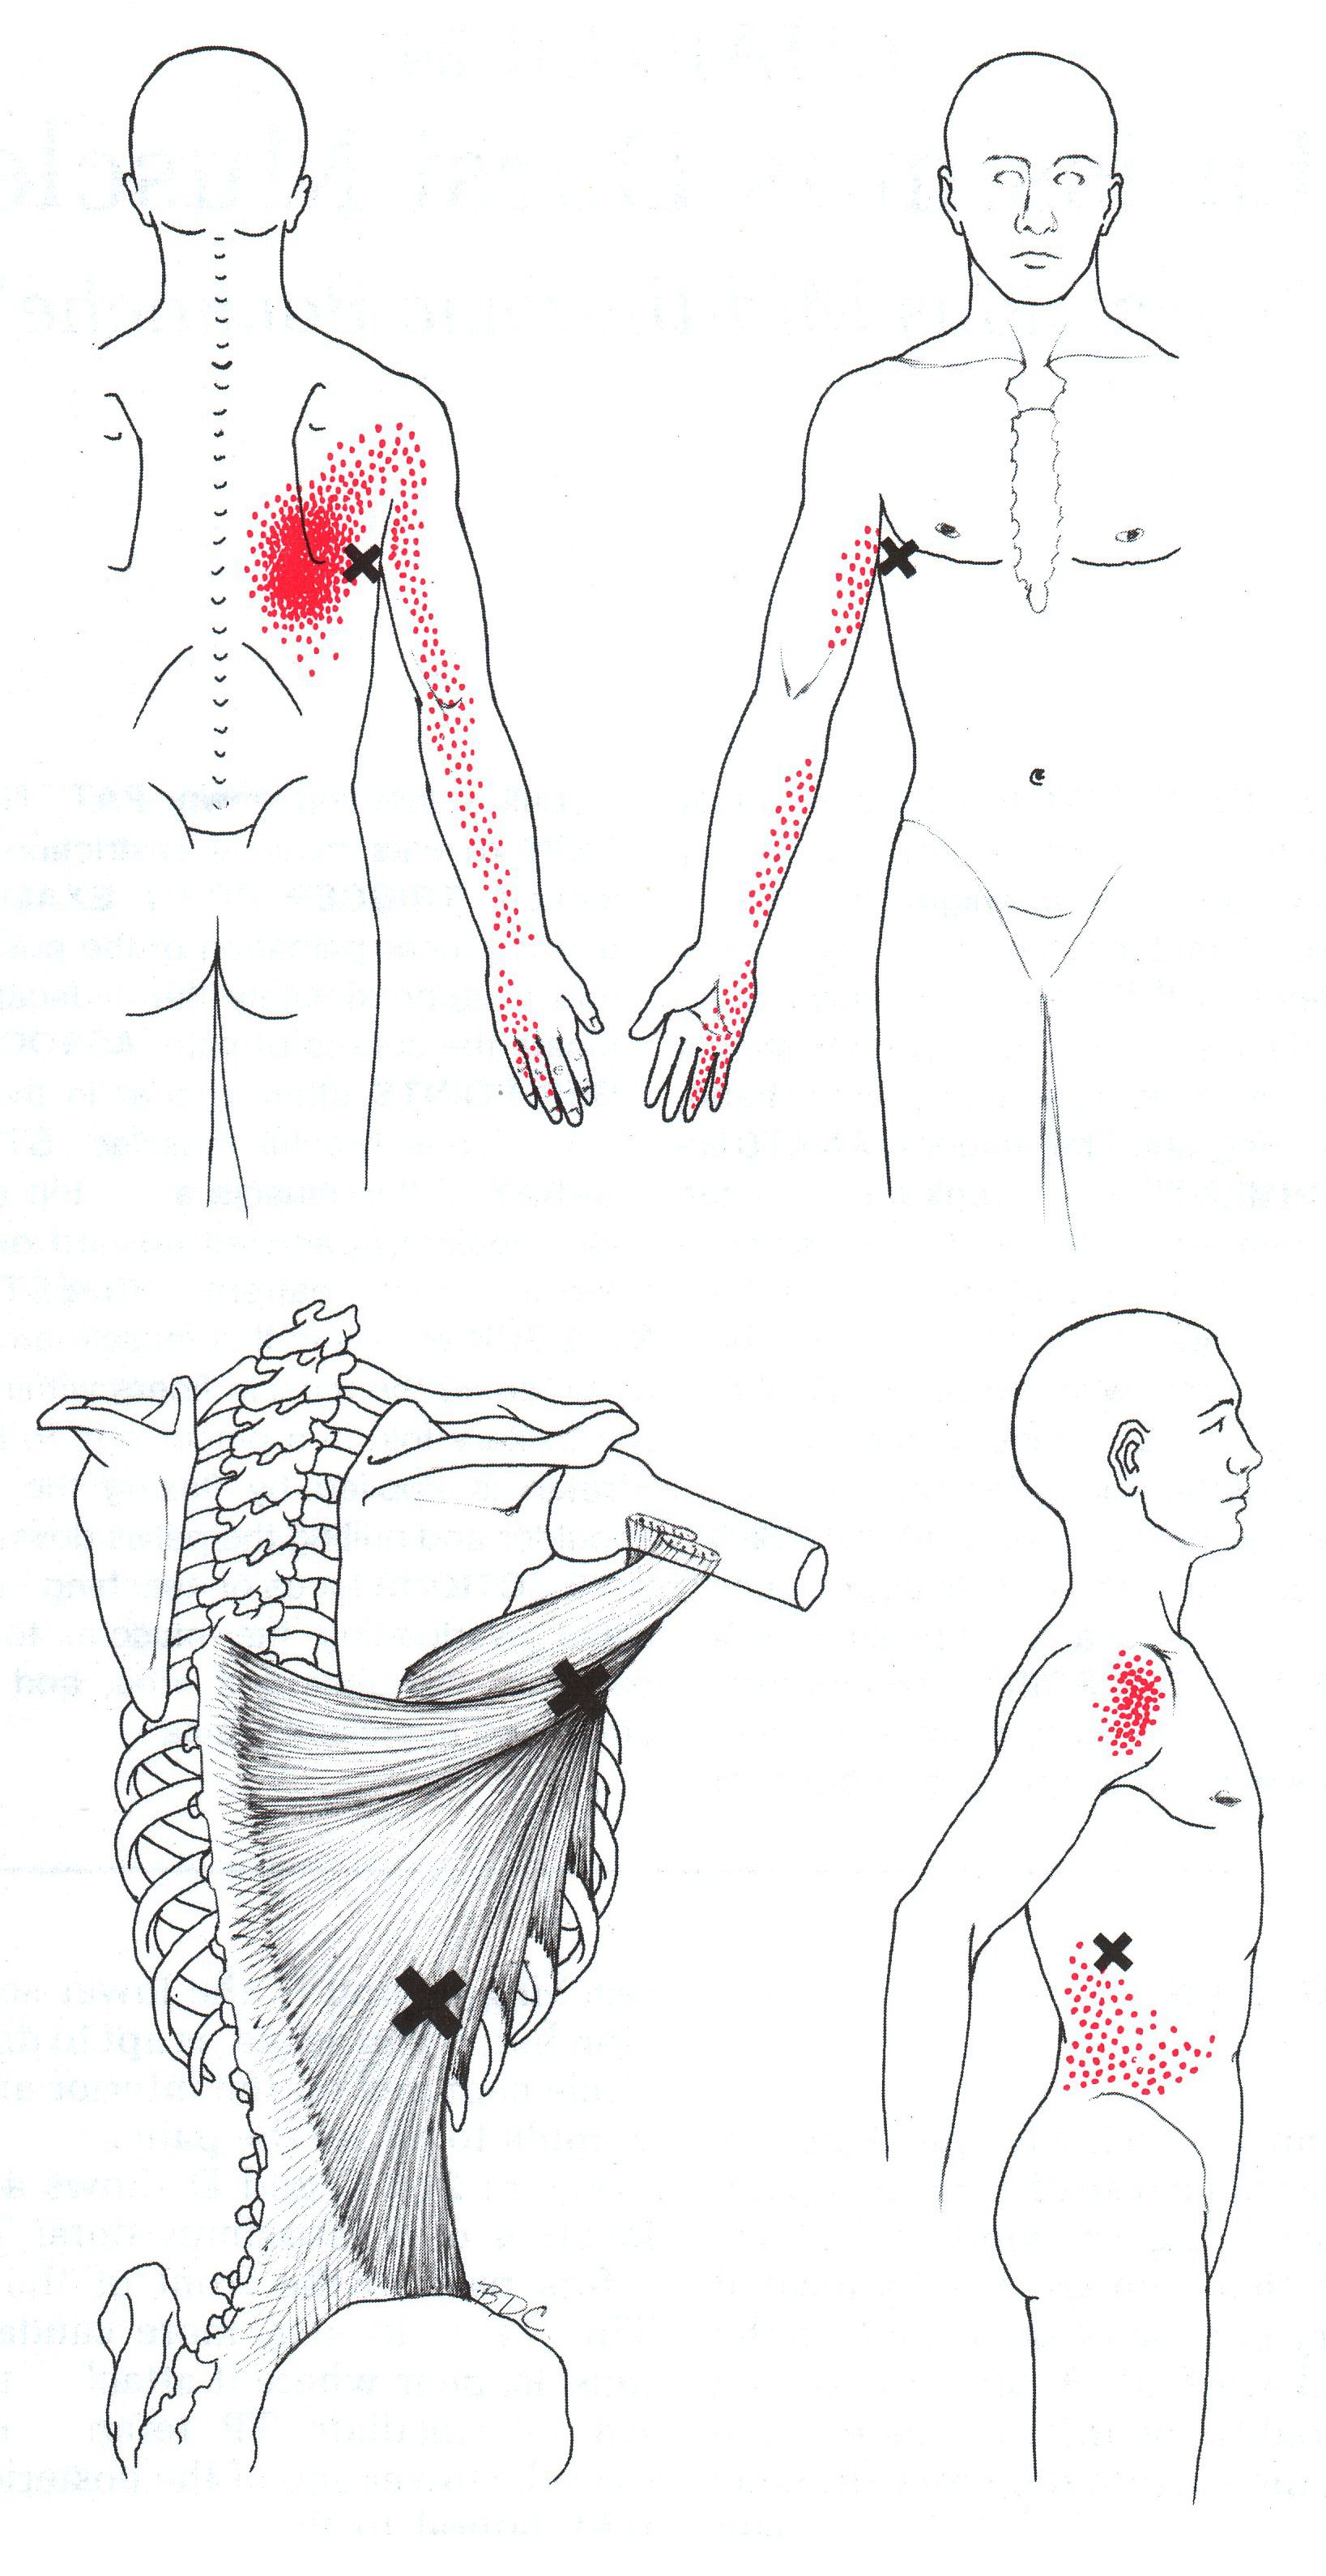 massage technique diagram leviton 3 way switch wiring decora latissimus dorsi the trigger point and referred pain guide